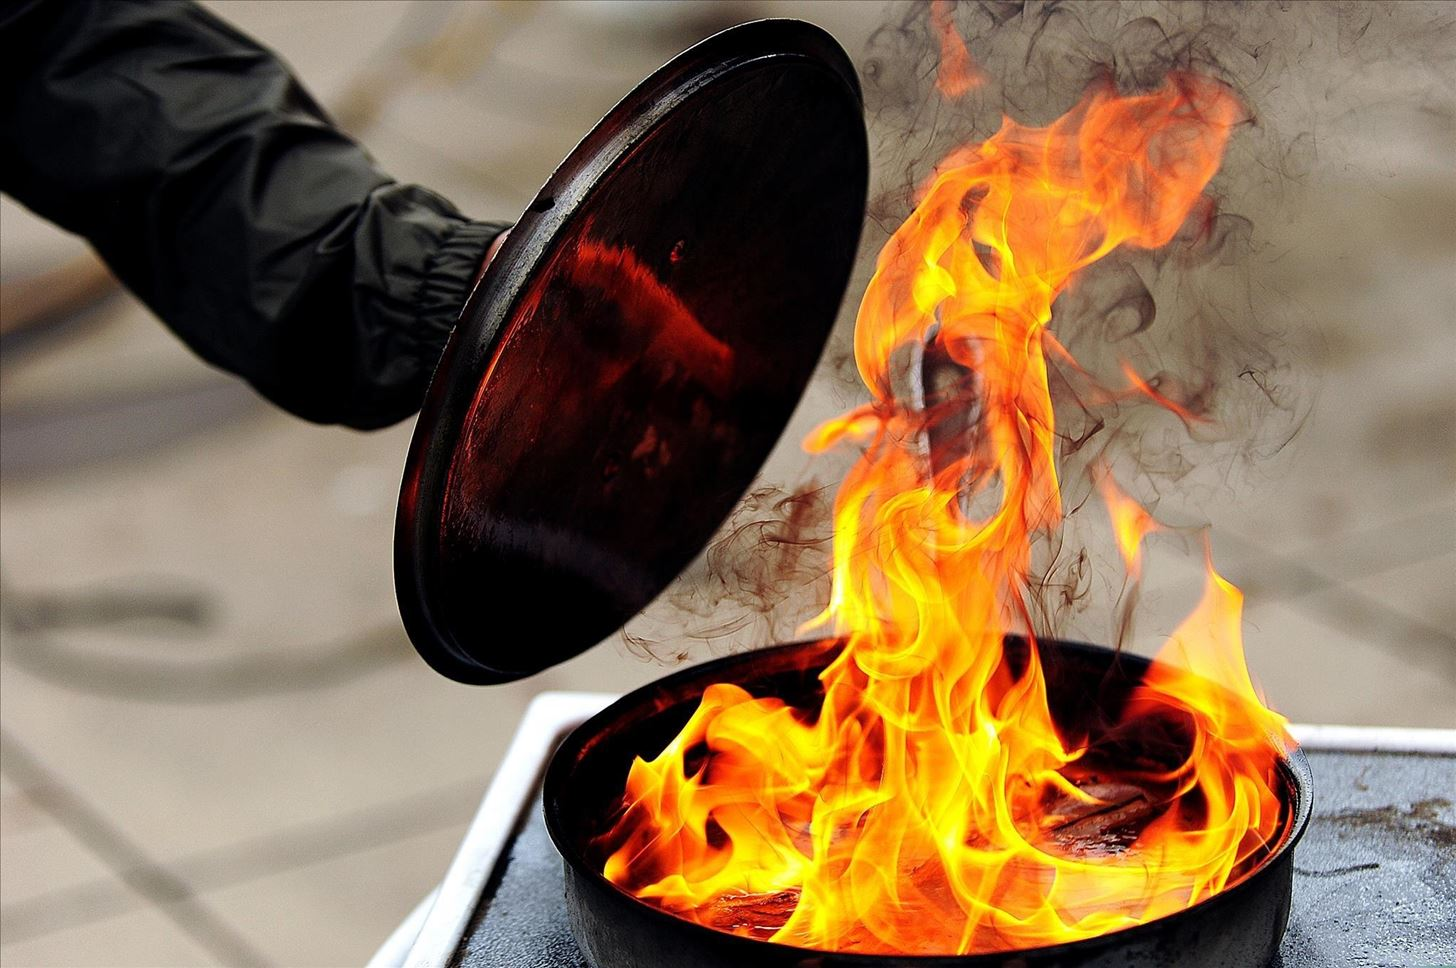 Watch How to Prevent Kitchen Grease Fires video